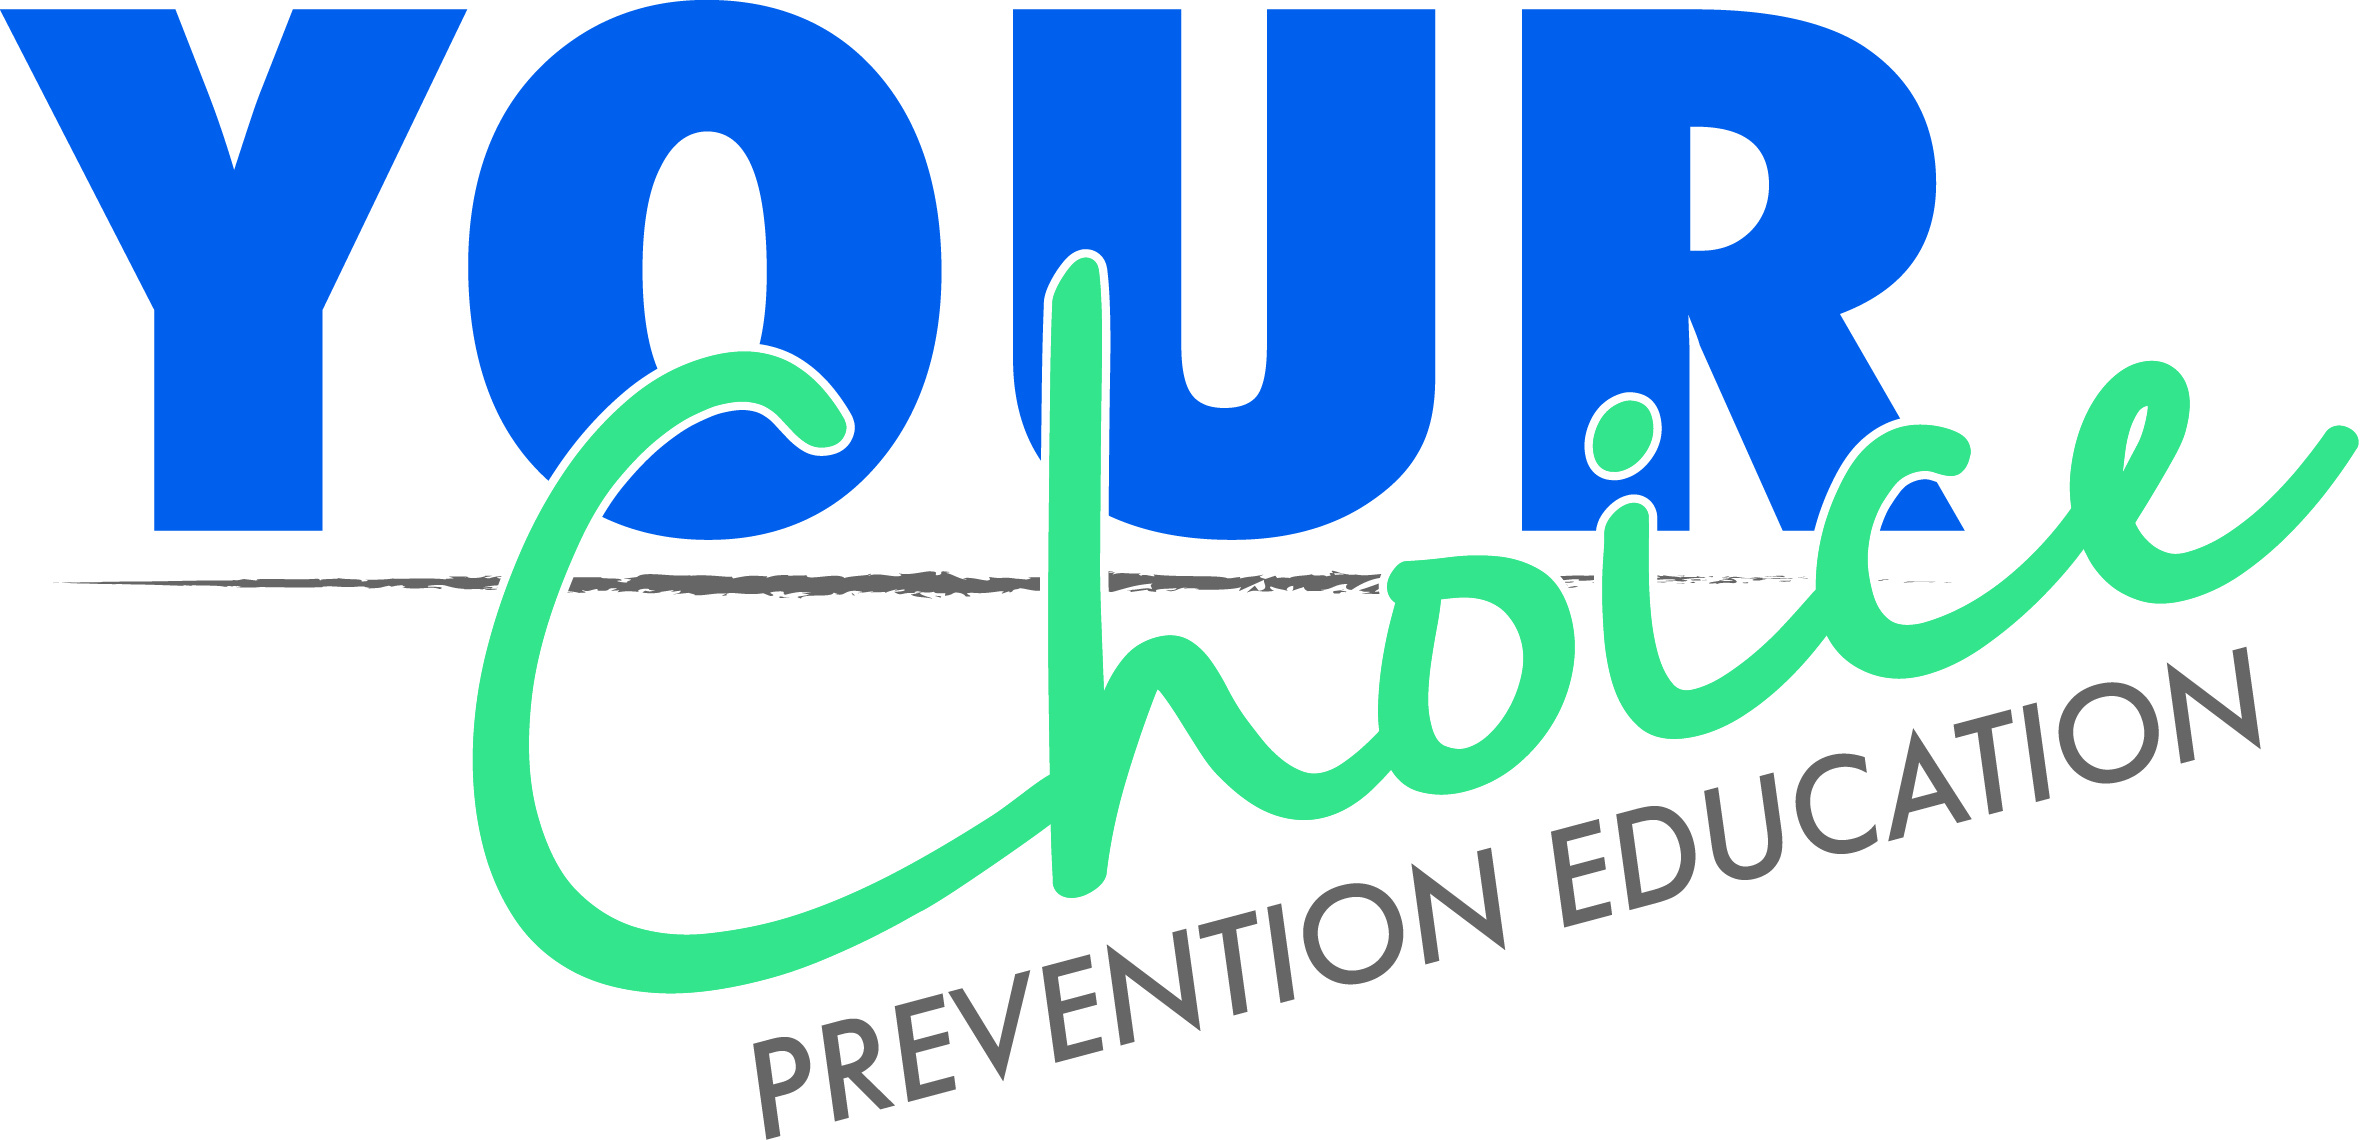 Your Choice Prevention Education